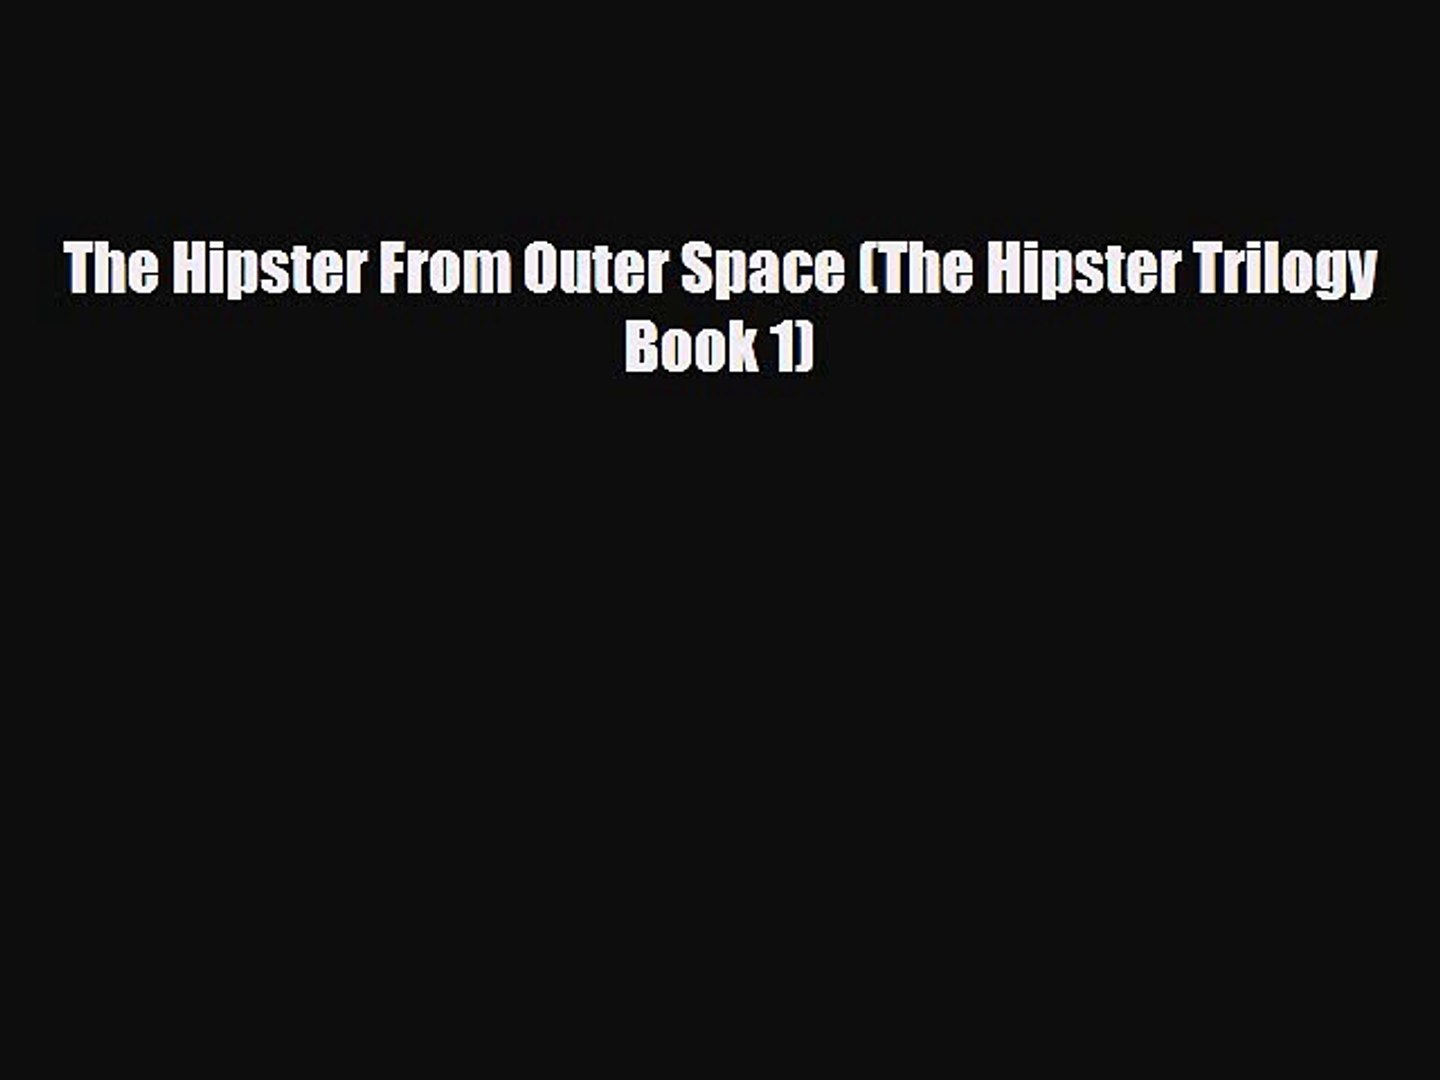 [PDF Download] The Hipster From Outer Space (The Hipster Trilogy Book 1) [Read] Full Ebook